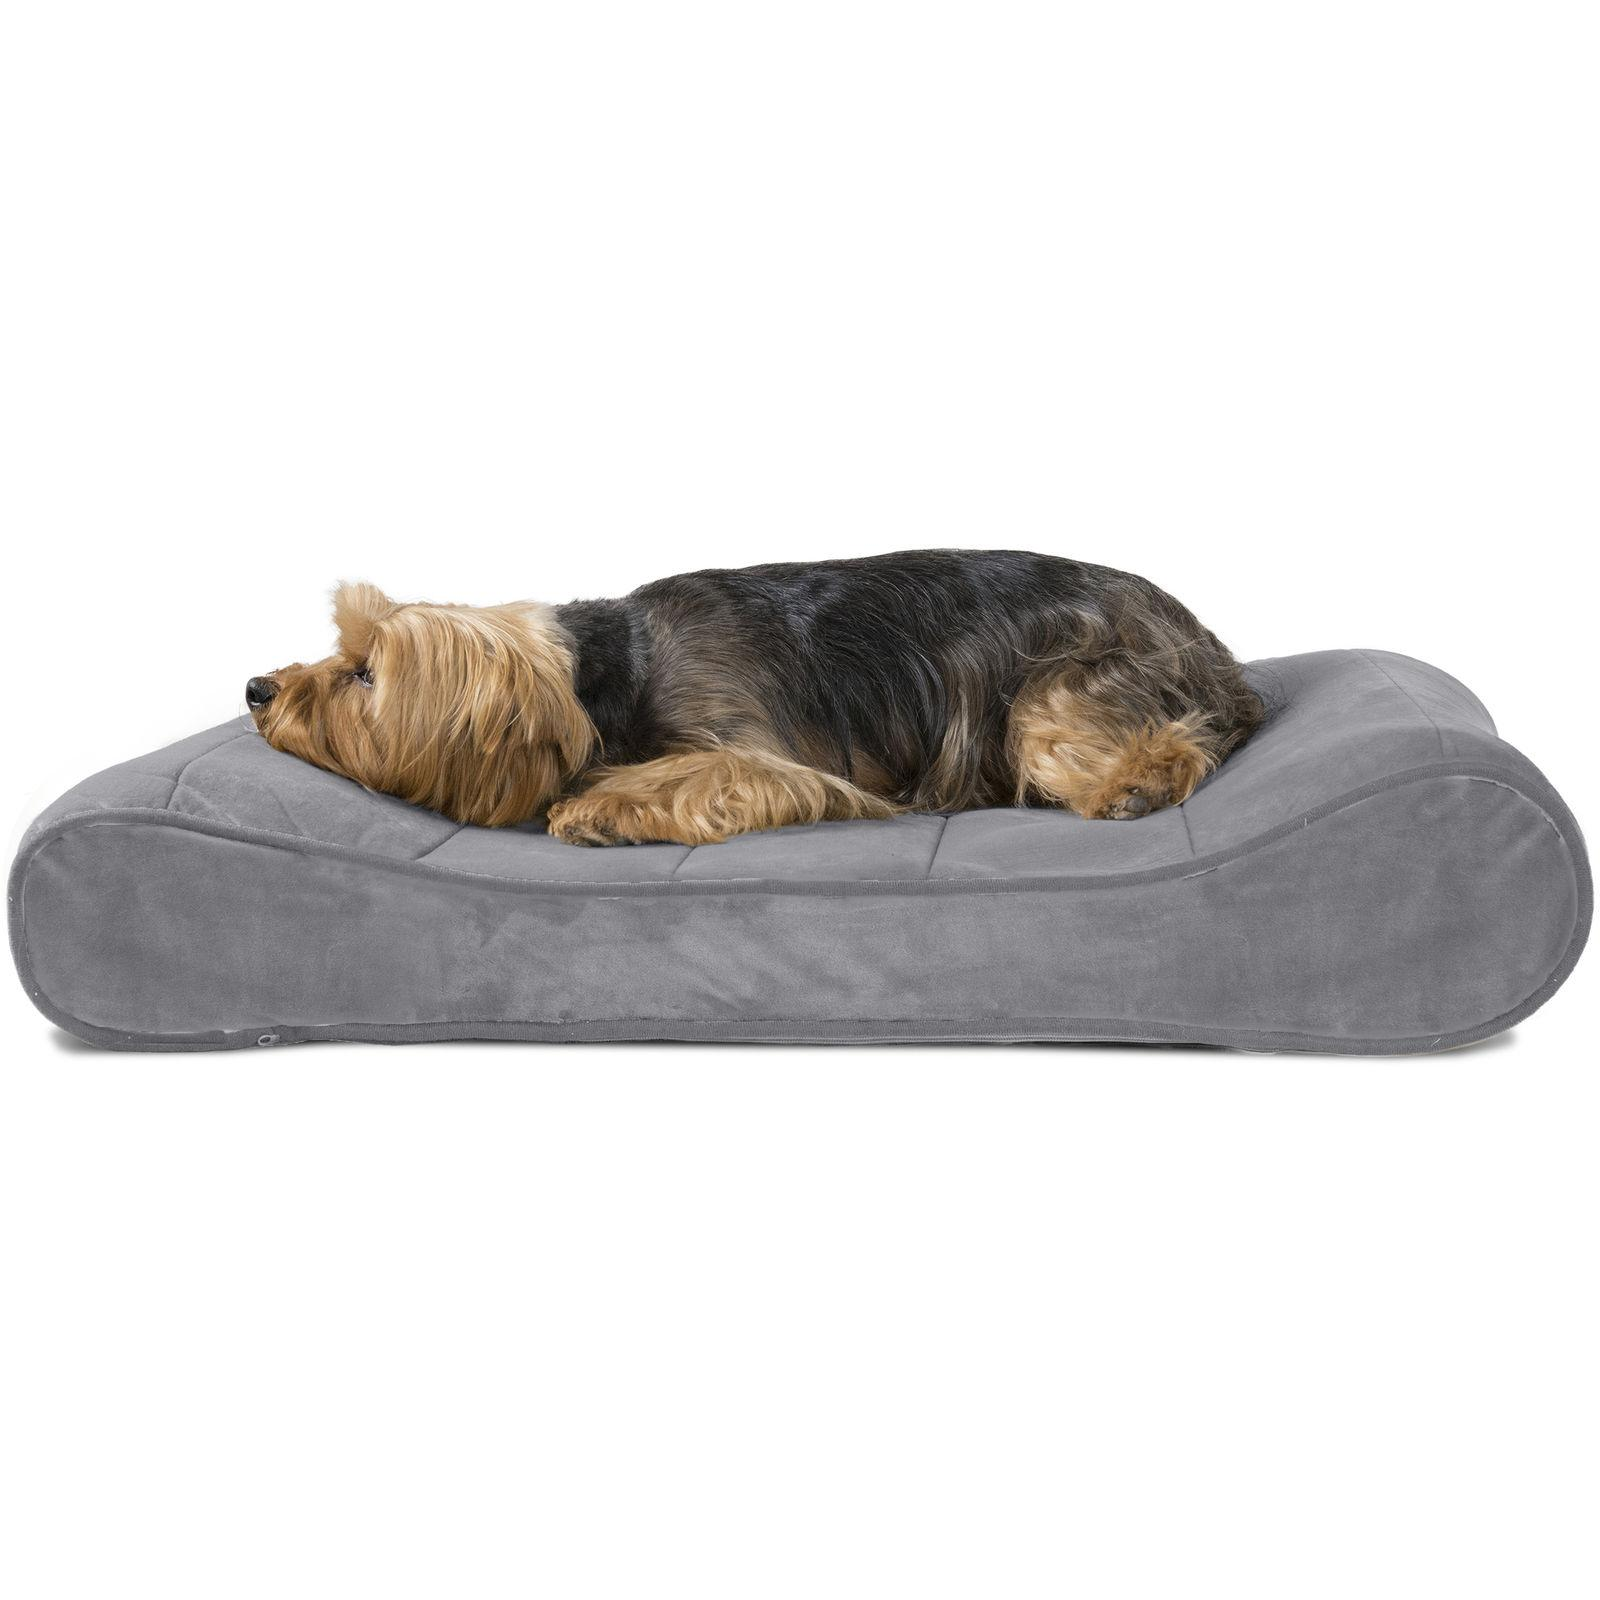 FurHaven Pet Luxe Lounger Dog